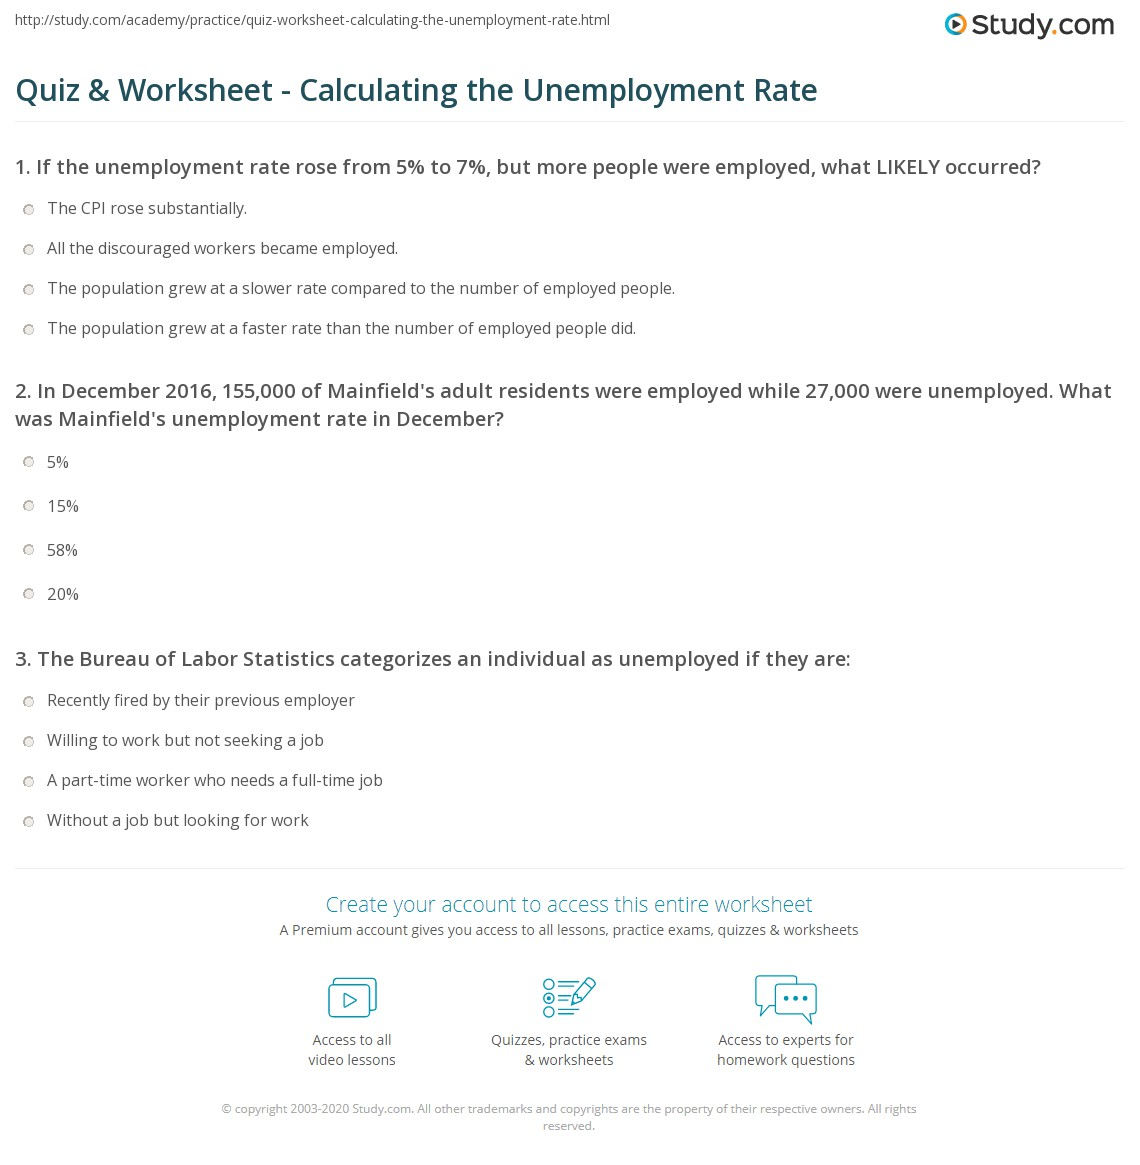 Quiz & Worksheet - Calculating the Unemployment Rate | Study.com